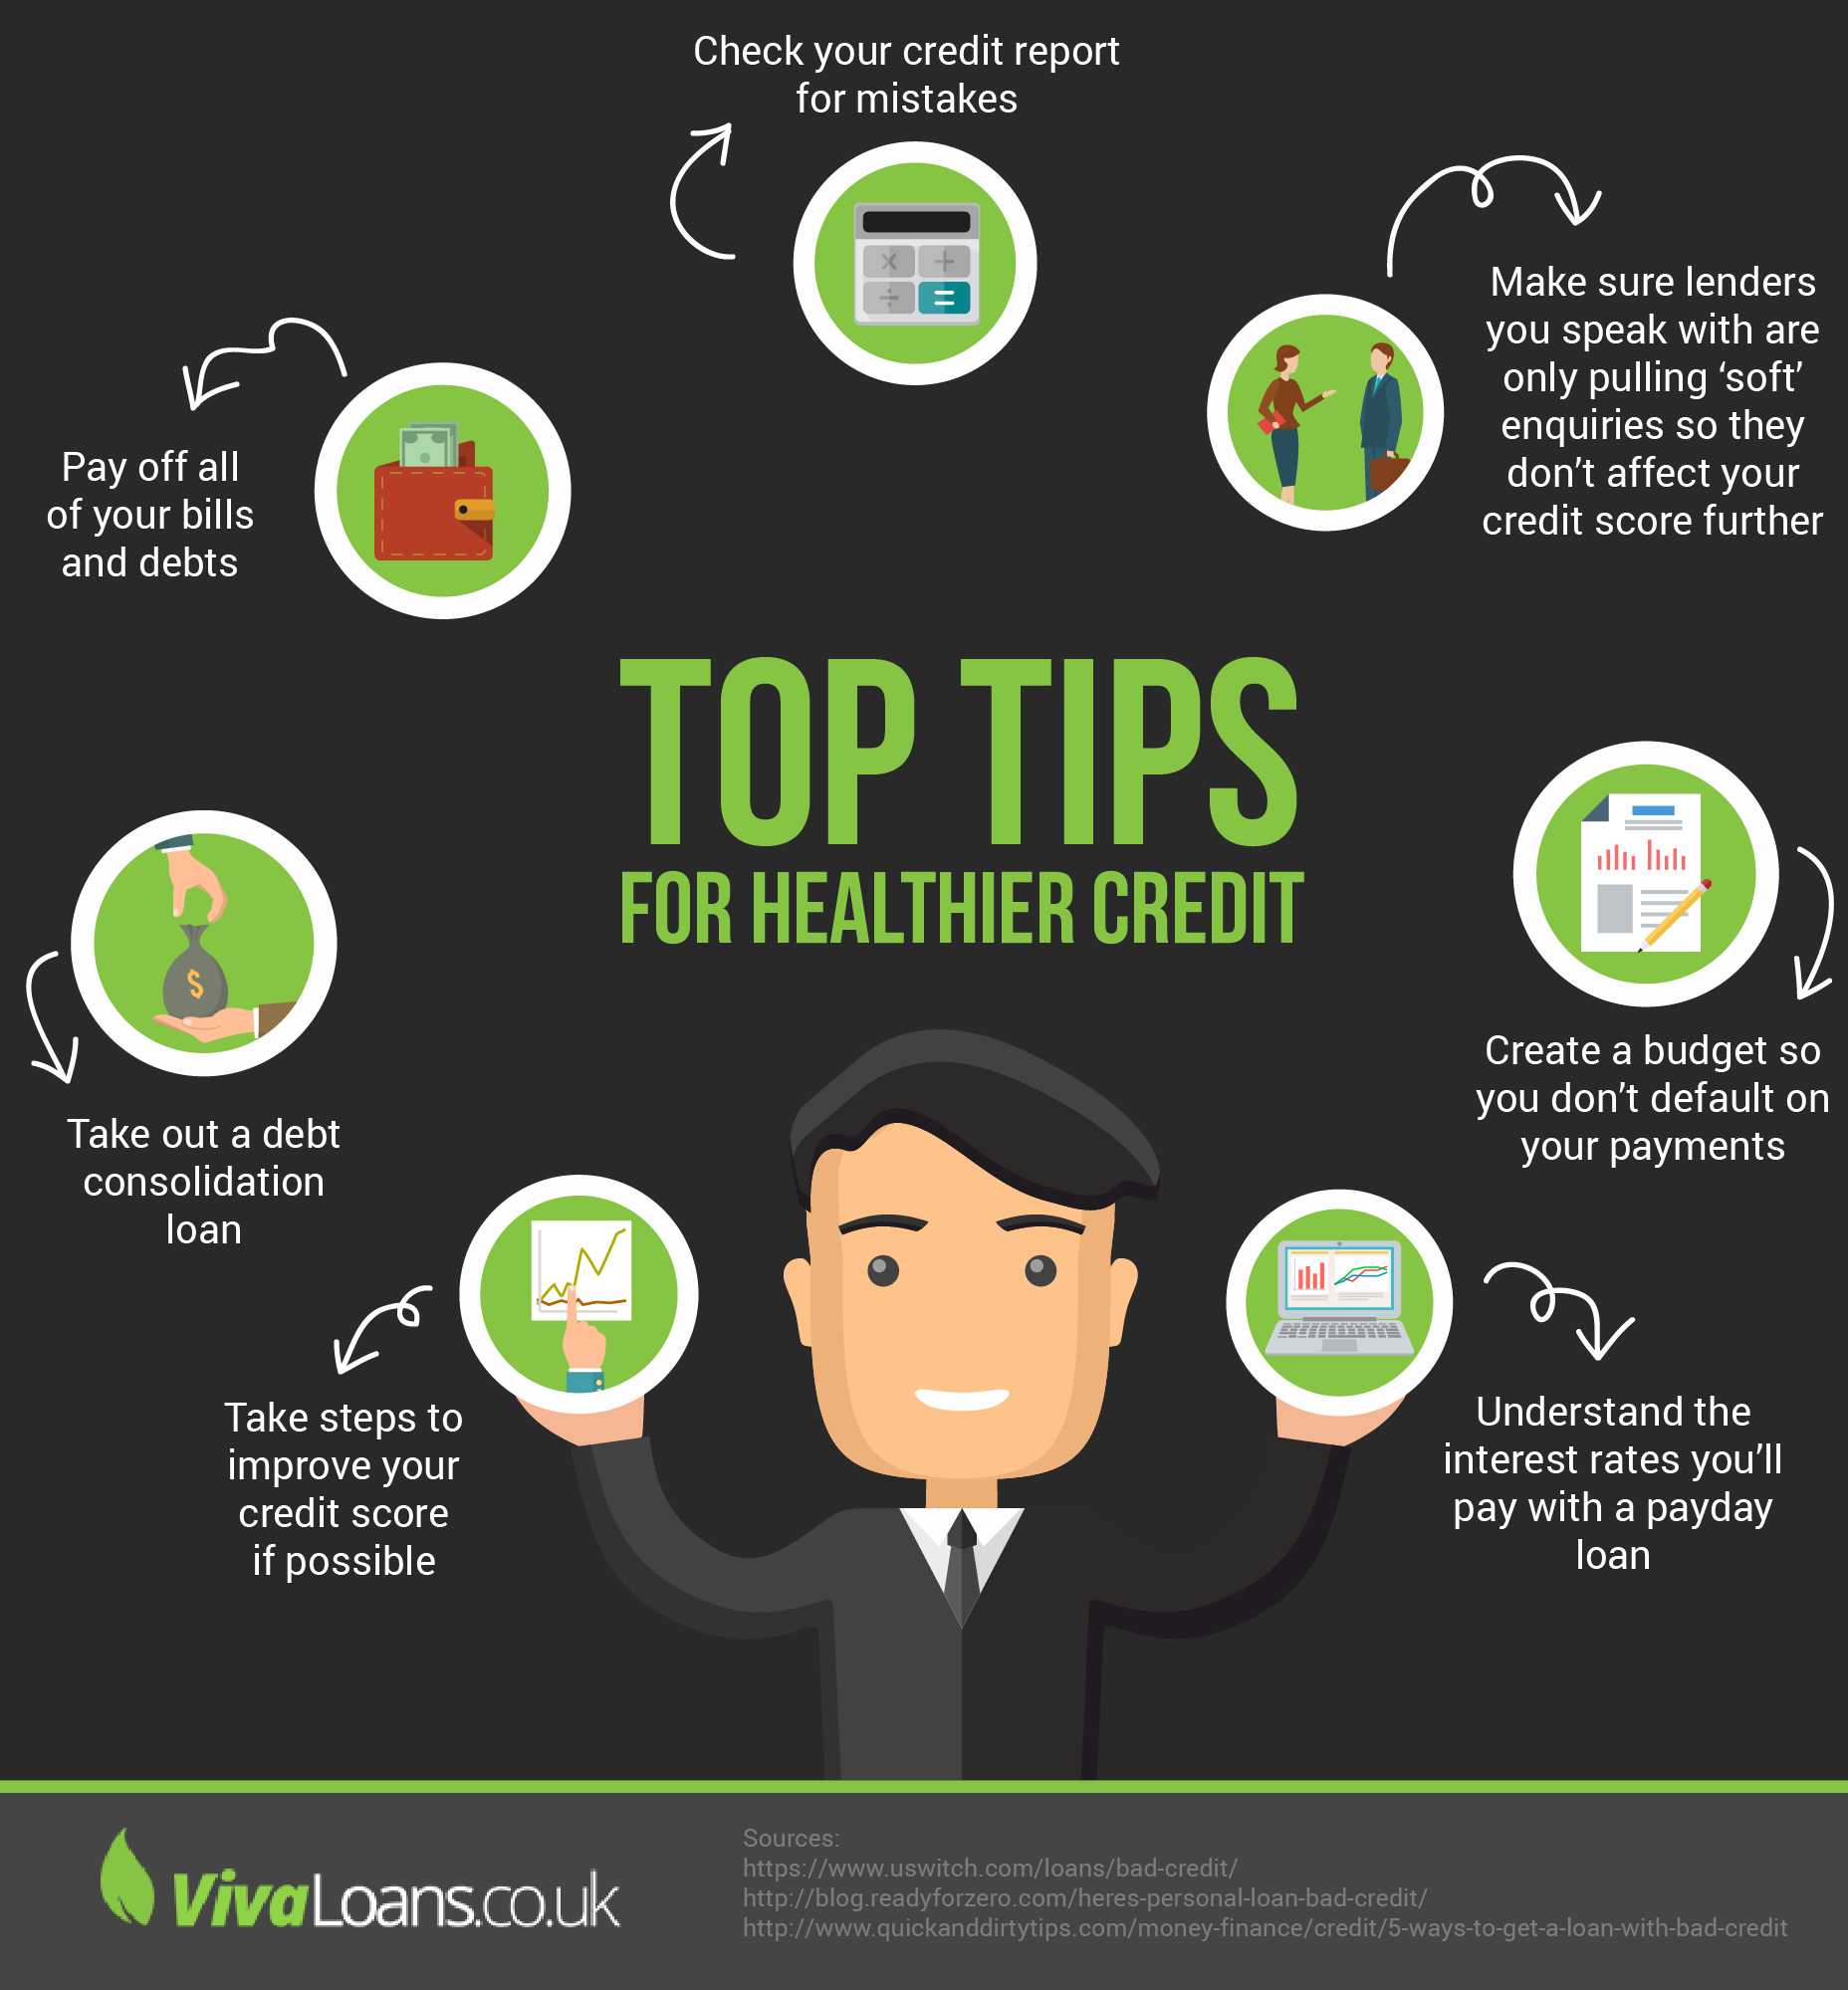 Top Tips for Healthier Credit